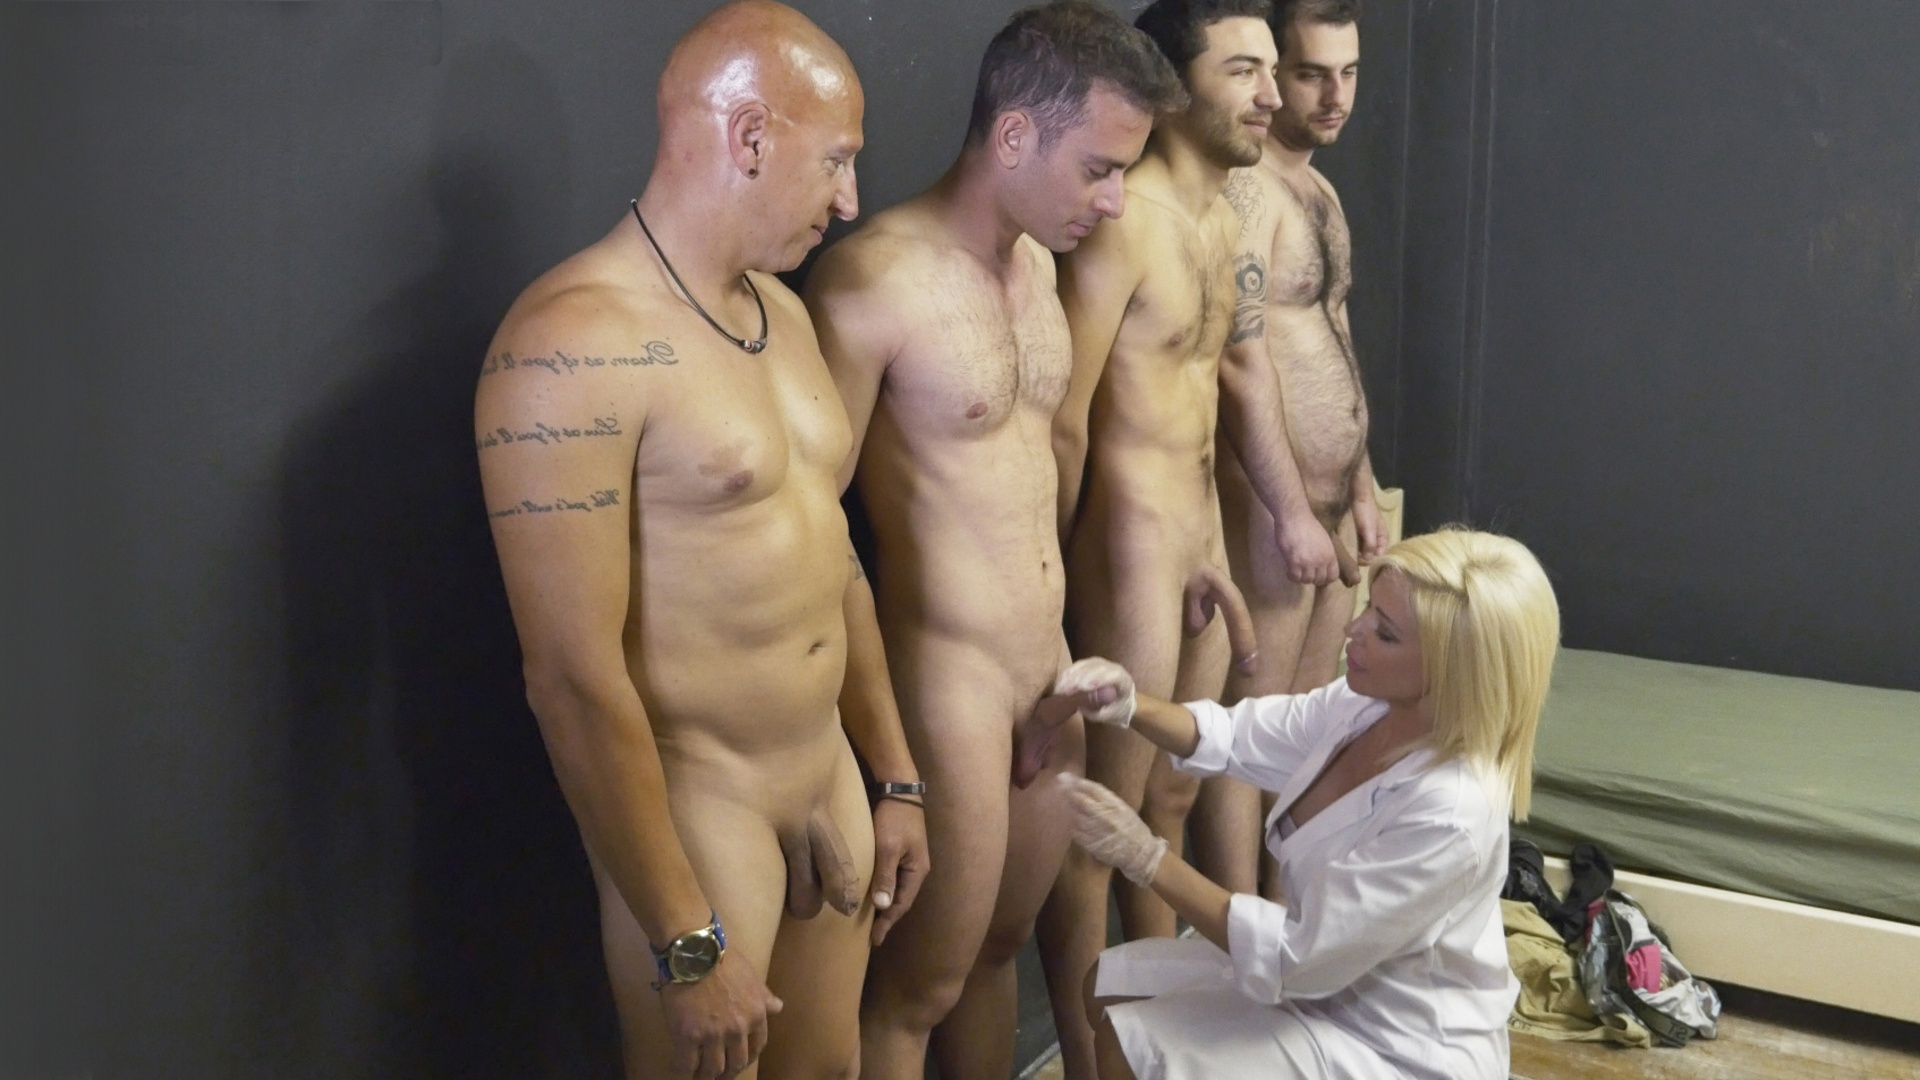 Marilou's creampie gang bang with troopers